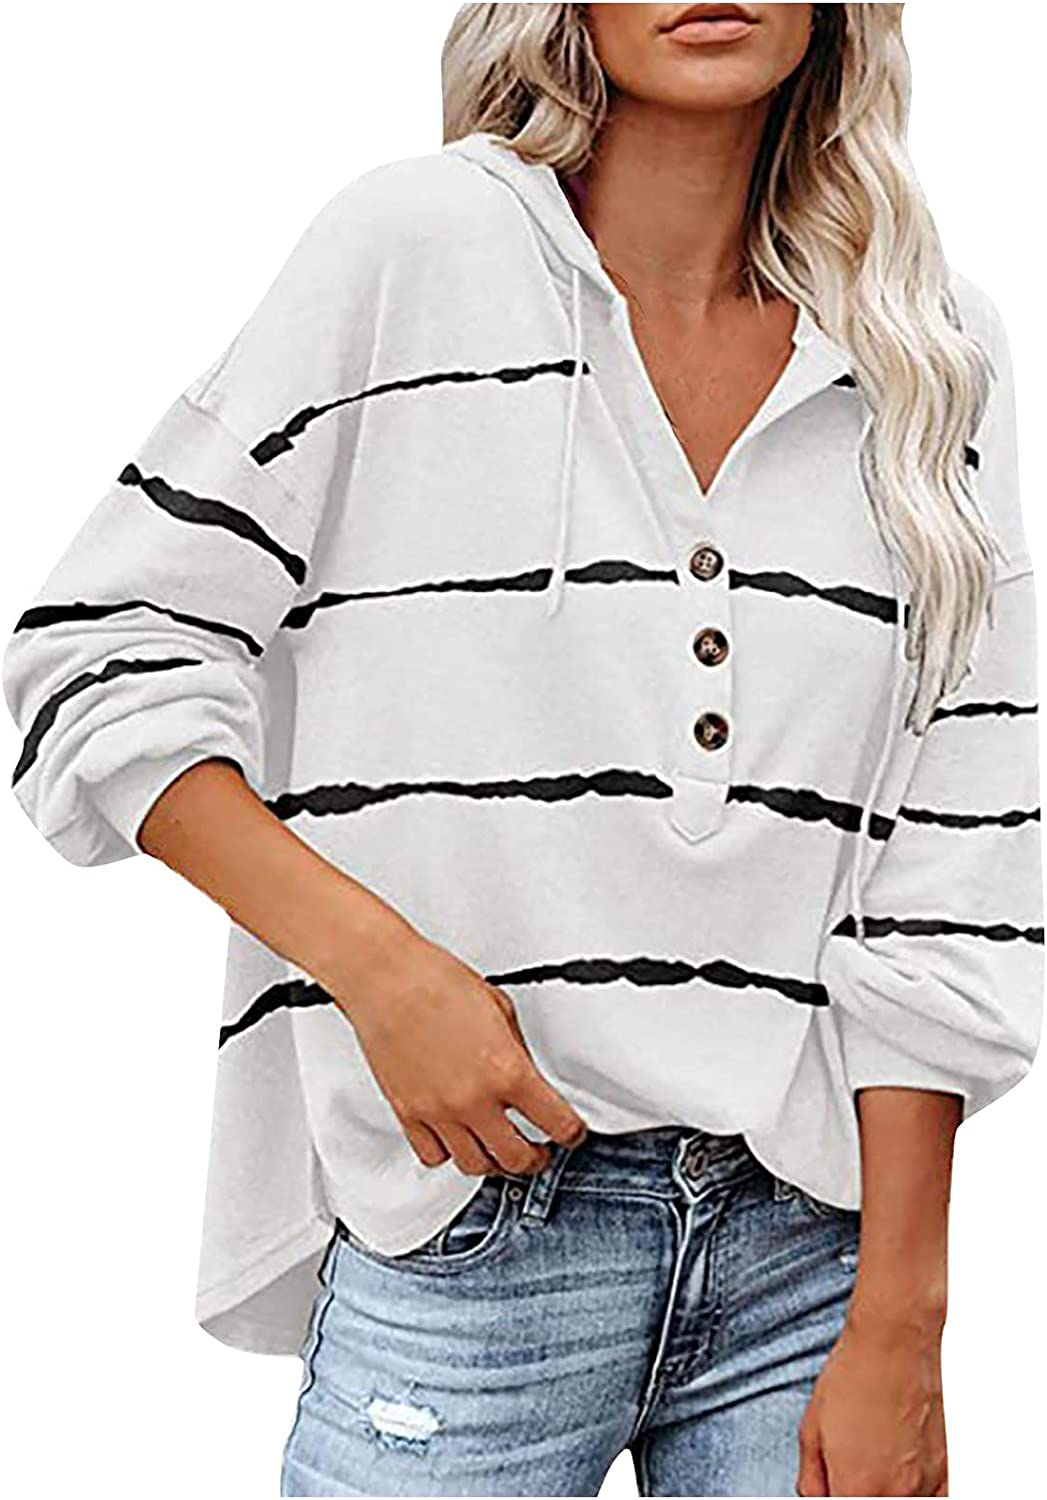 Kanzd Las Vegas Mall Long Mail order cheap Sleeve Shirts for Stripe V-Neck Casual T Women